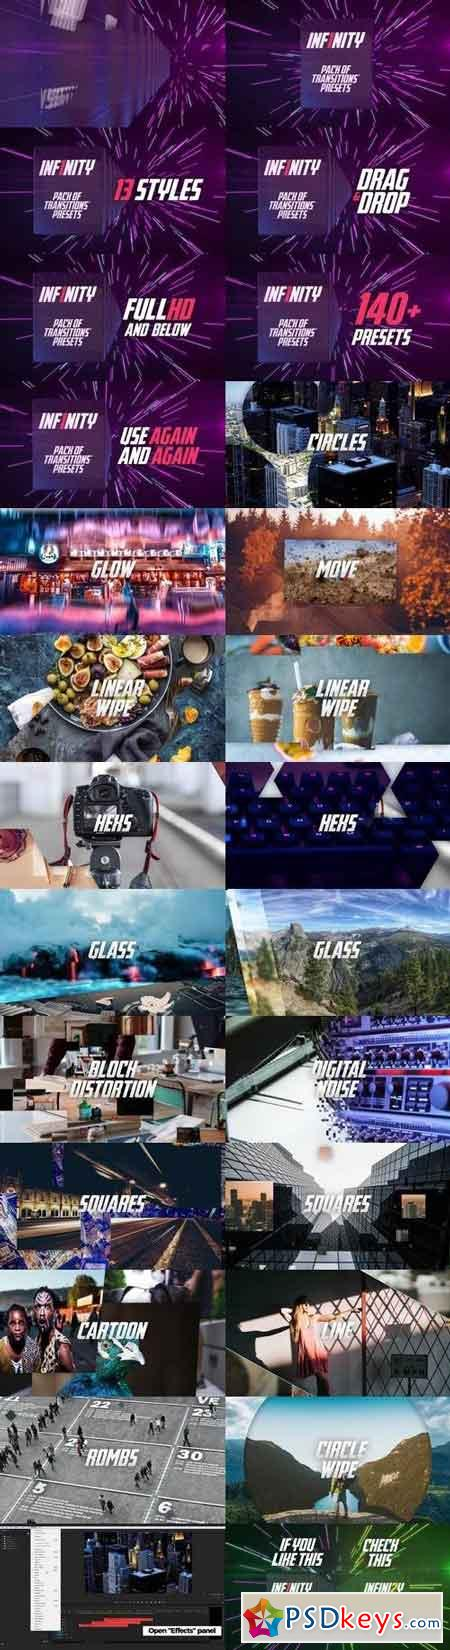 Inf1nity Pack Of Transitions Presets Premiere Pro Templates 57632